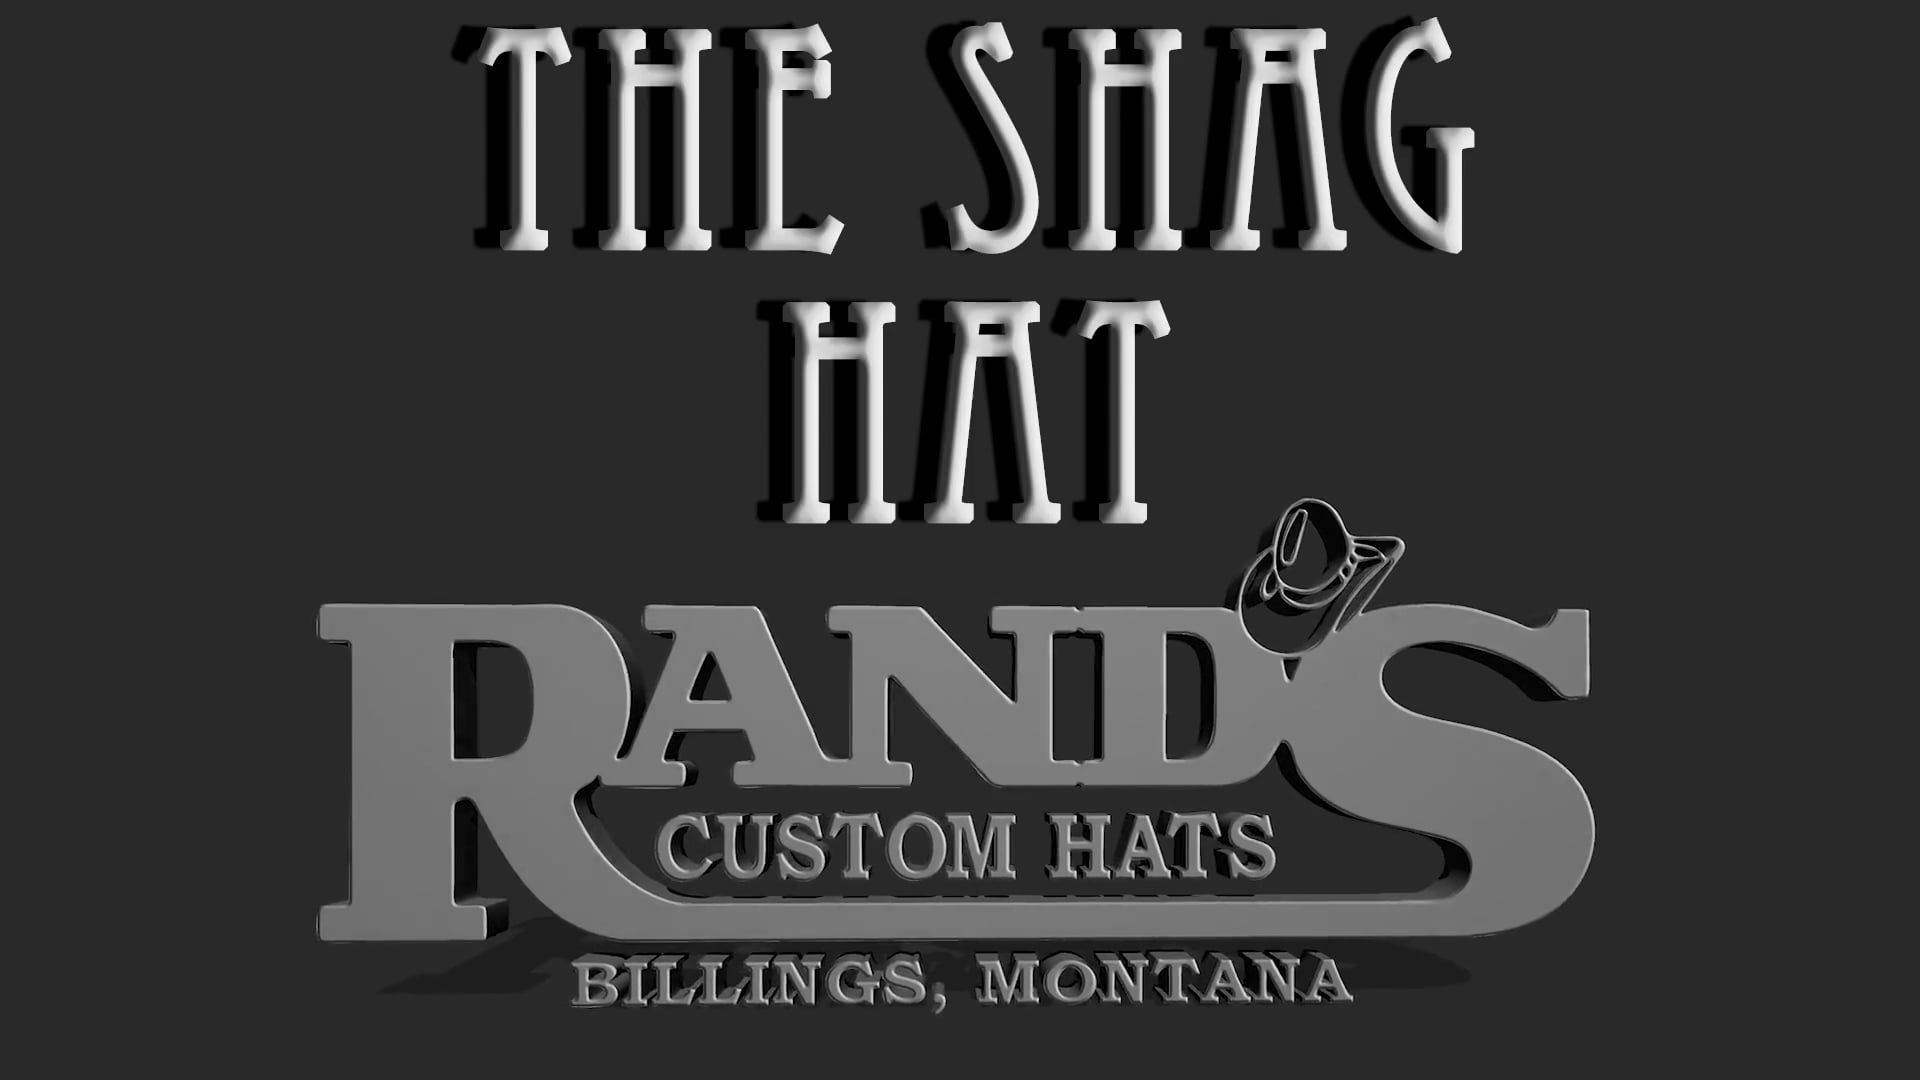 Video of The Shag Hat by Rand's Custom Hatters.  Adorable!